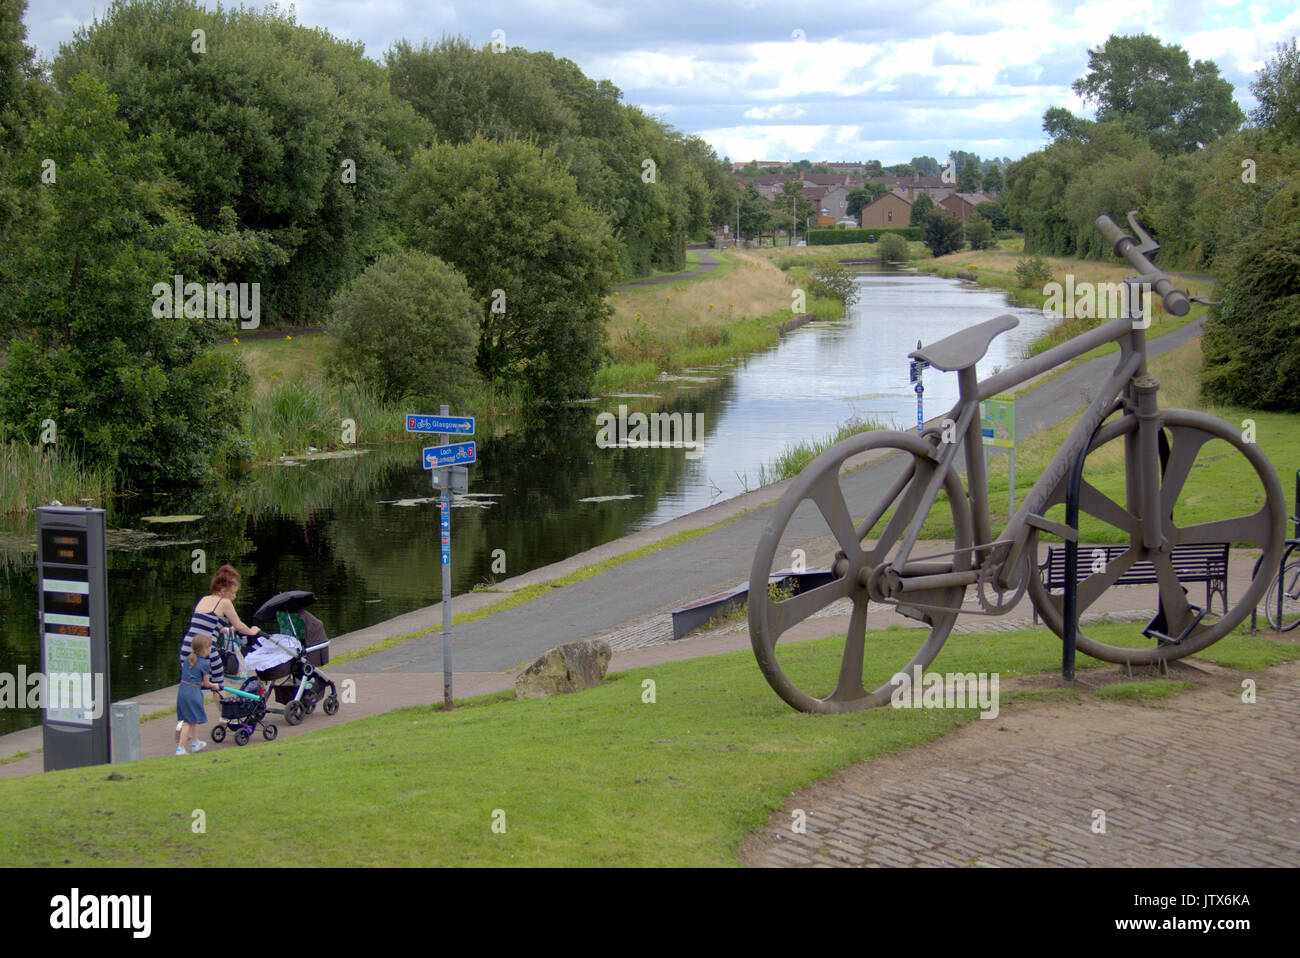 mother and child both pushing prams  pass the Bankies bike sculpture at Clydebank    in Summer weather on the Forth and Clyde canal towpath NCN 7 - Stock Image